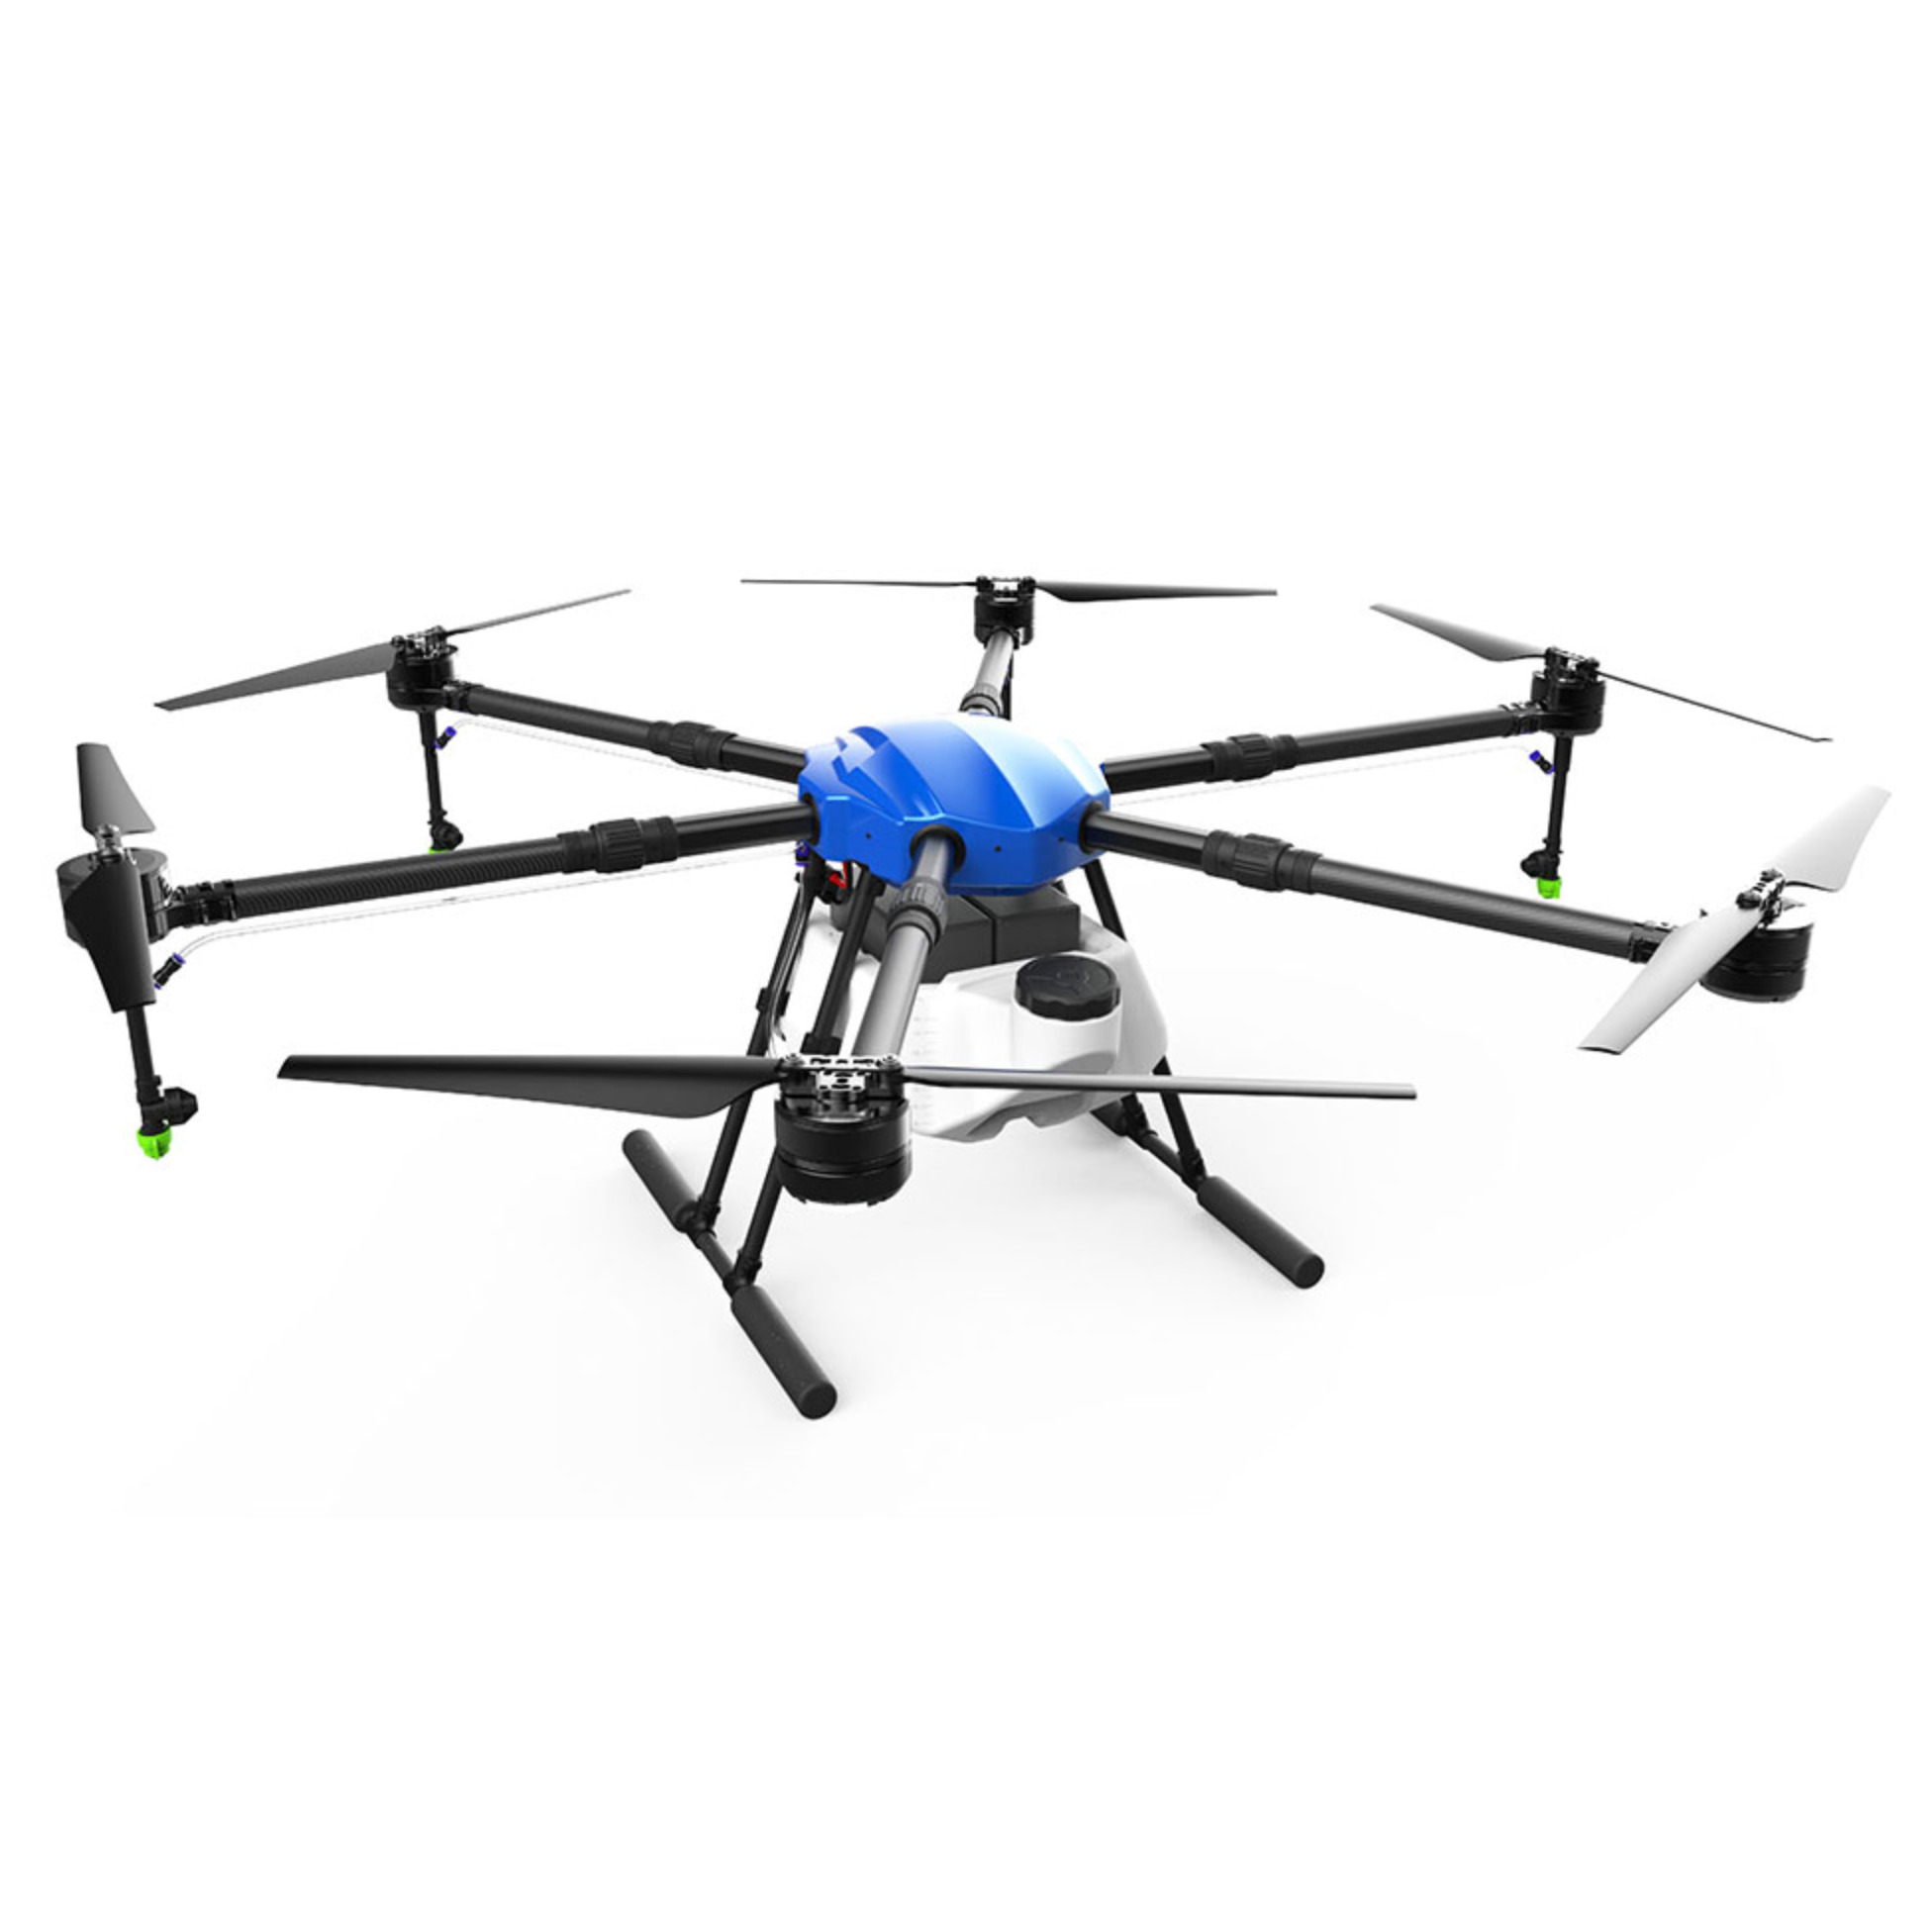 EFT E610S 10L Agricultural spraying drone E610S 10KG folding wheelbase frame brushless water pump spray X6 power system kit